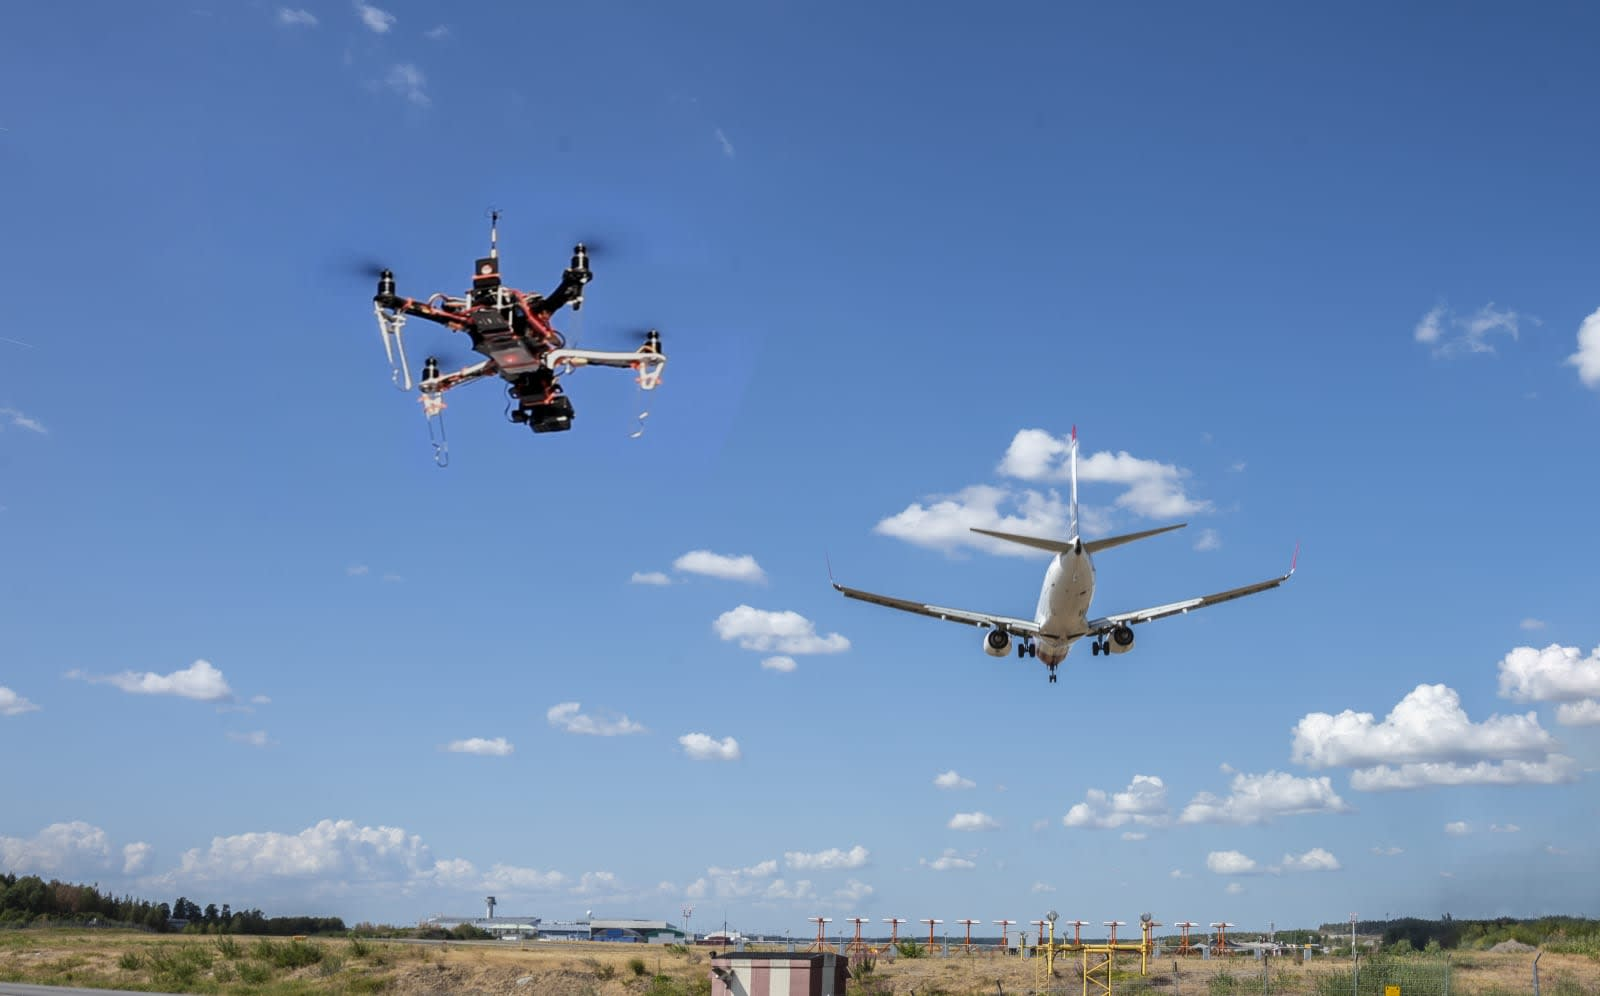 FAA makes it easy for drone hobbyists to fly in controlled airspace